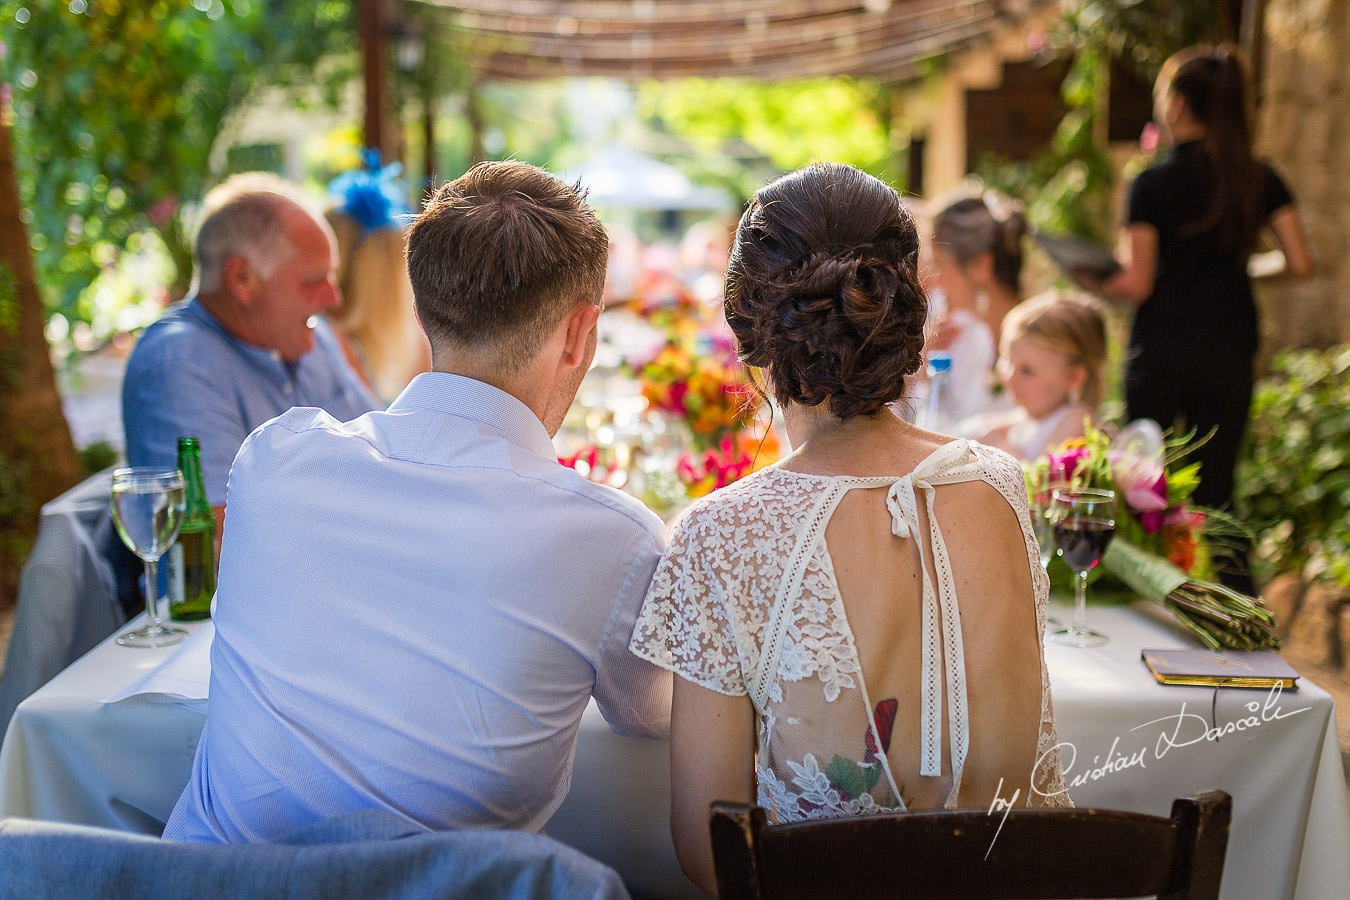 A beautiful wedding day at the Vasilias Nikoklis Inn in Paphos, captured by Cristian Dascalu. Post-Ceremony moments.